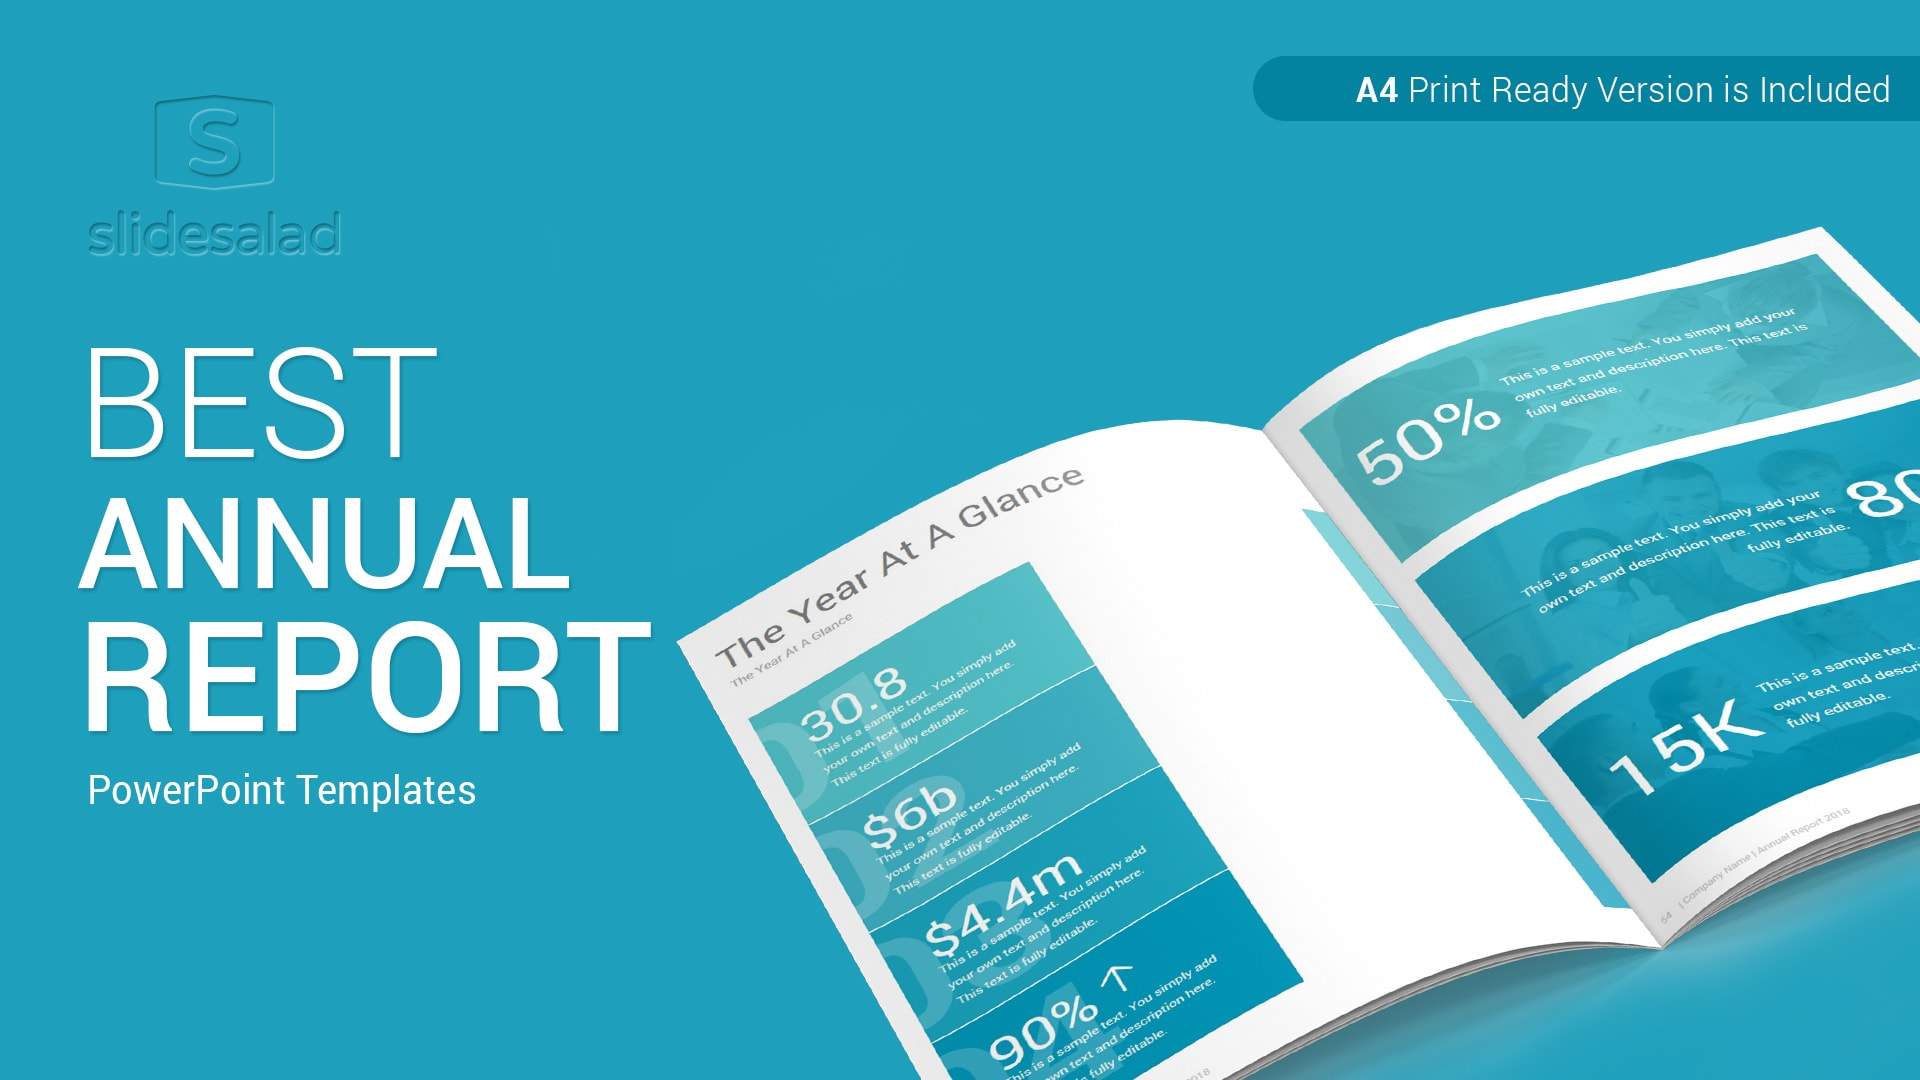 Best Annual Report PowerPoint Presentation Templates